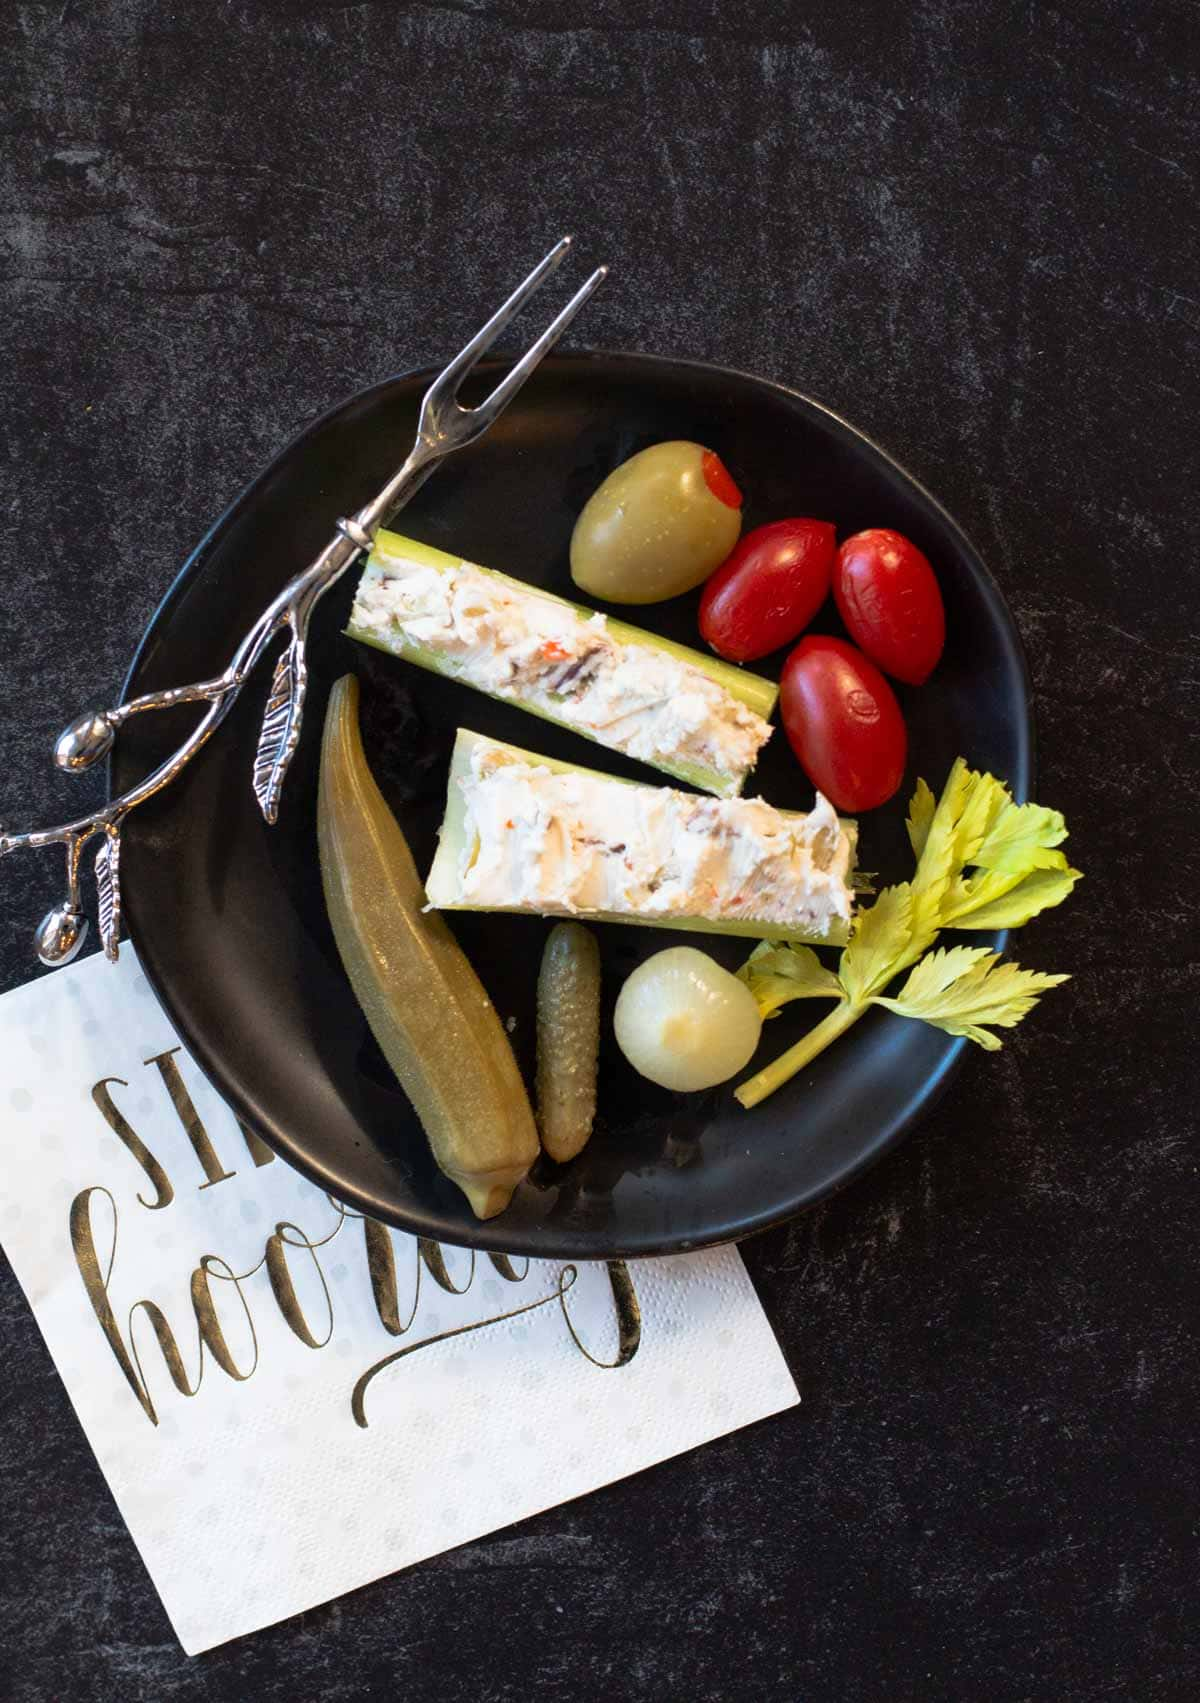 A black appetizer plate with cream cheese stuffed celery sticks, cherry tomatoes, and pickled okra